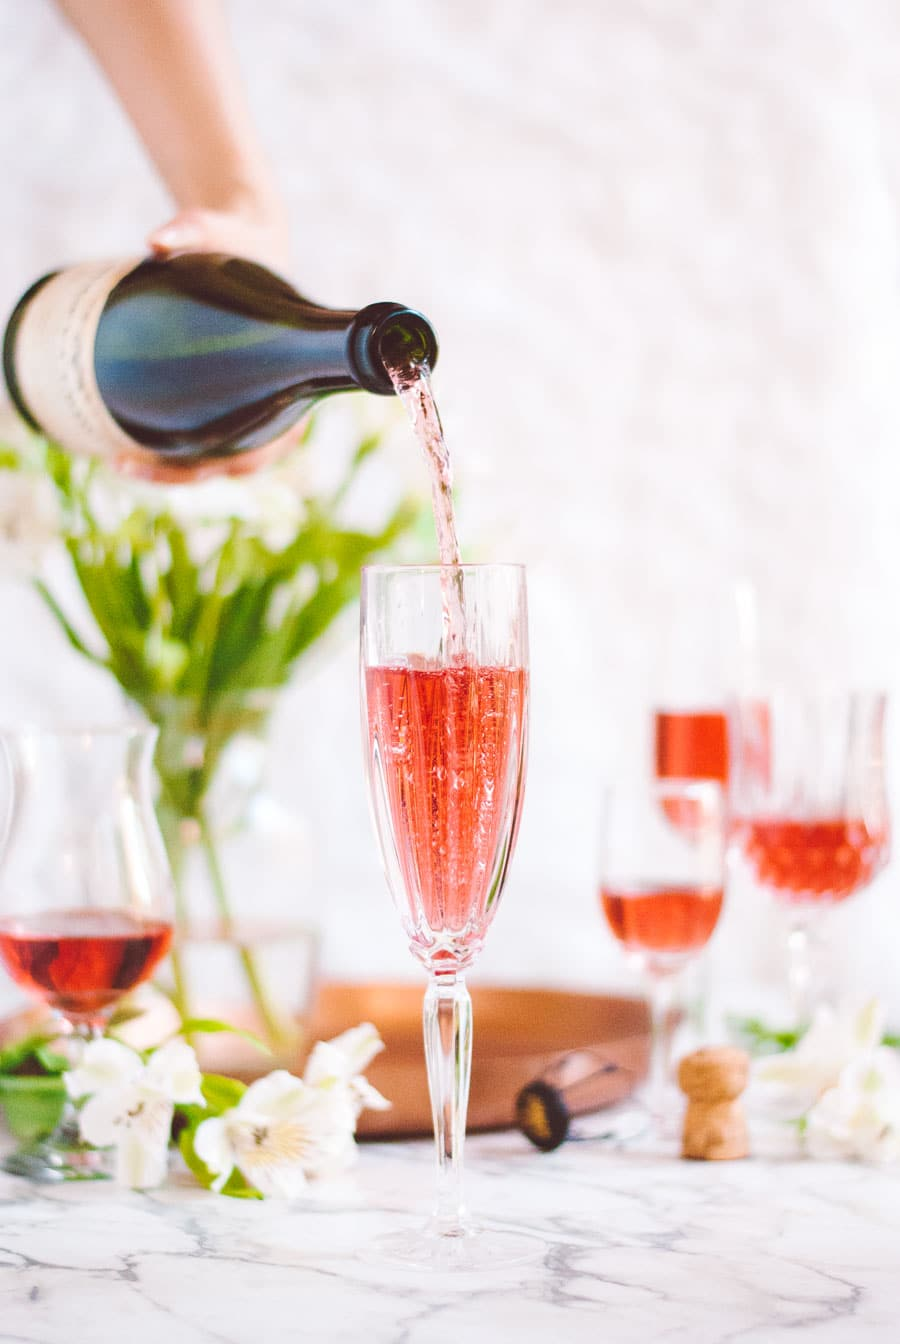 a bottle of Bugey-Cerdon La Cueille French sparkling wine bring poured into a flute